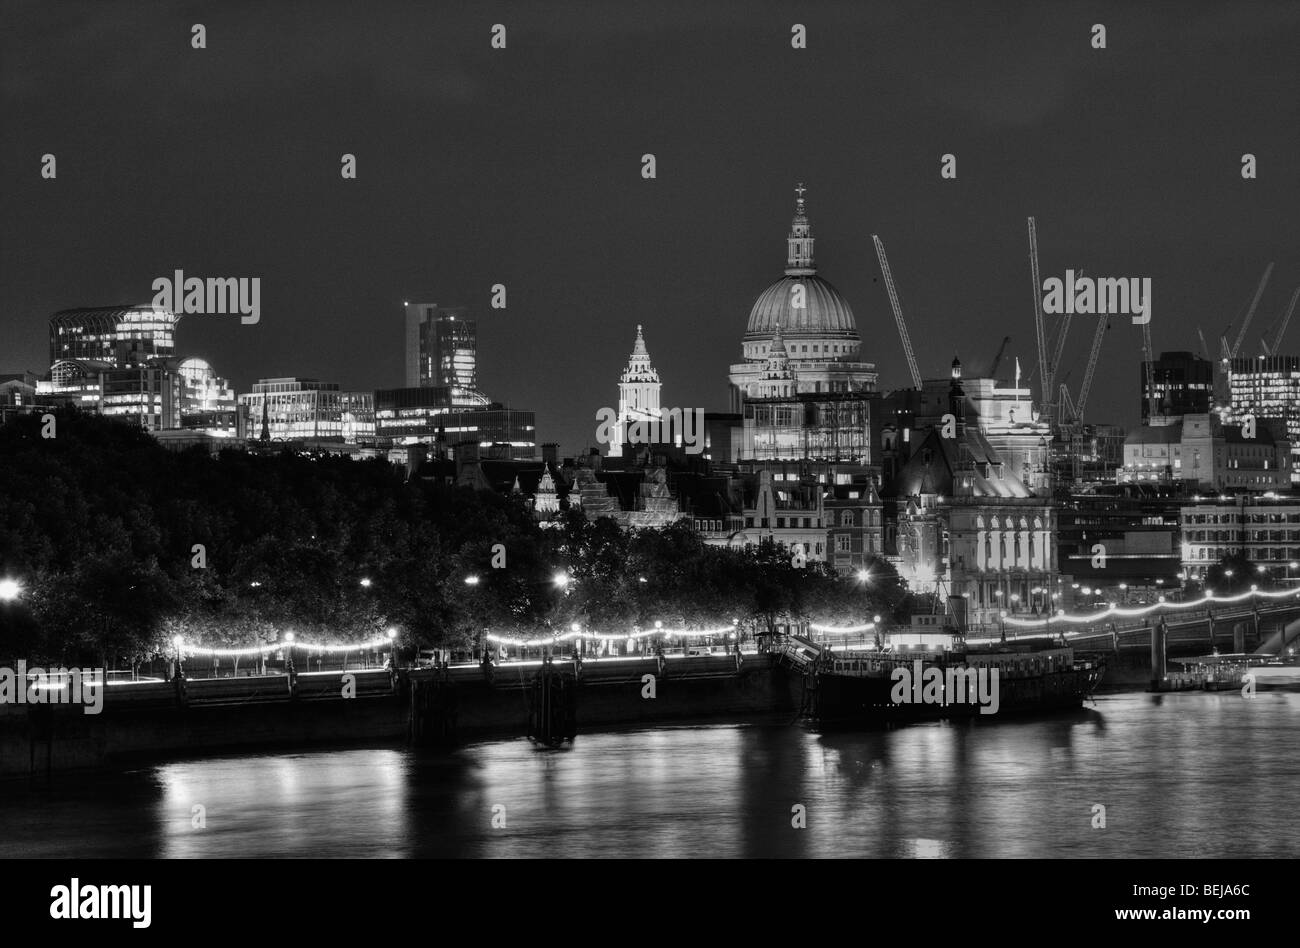 St Paul's Cathedral and the City of London seen from across the River Thames at night. - Stock Image